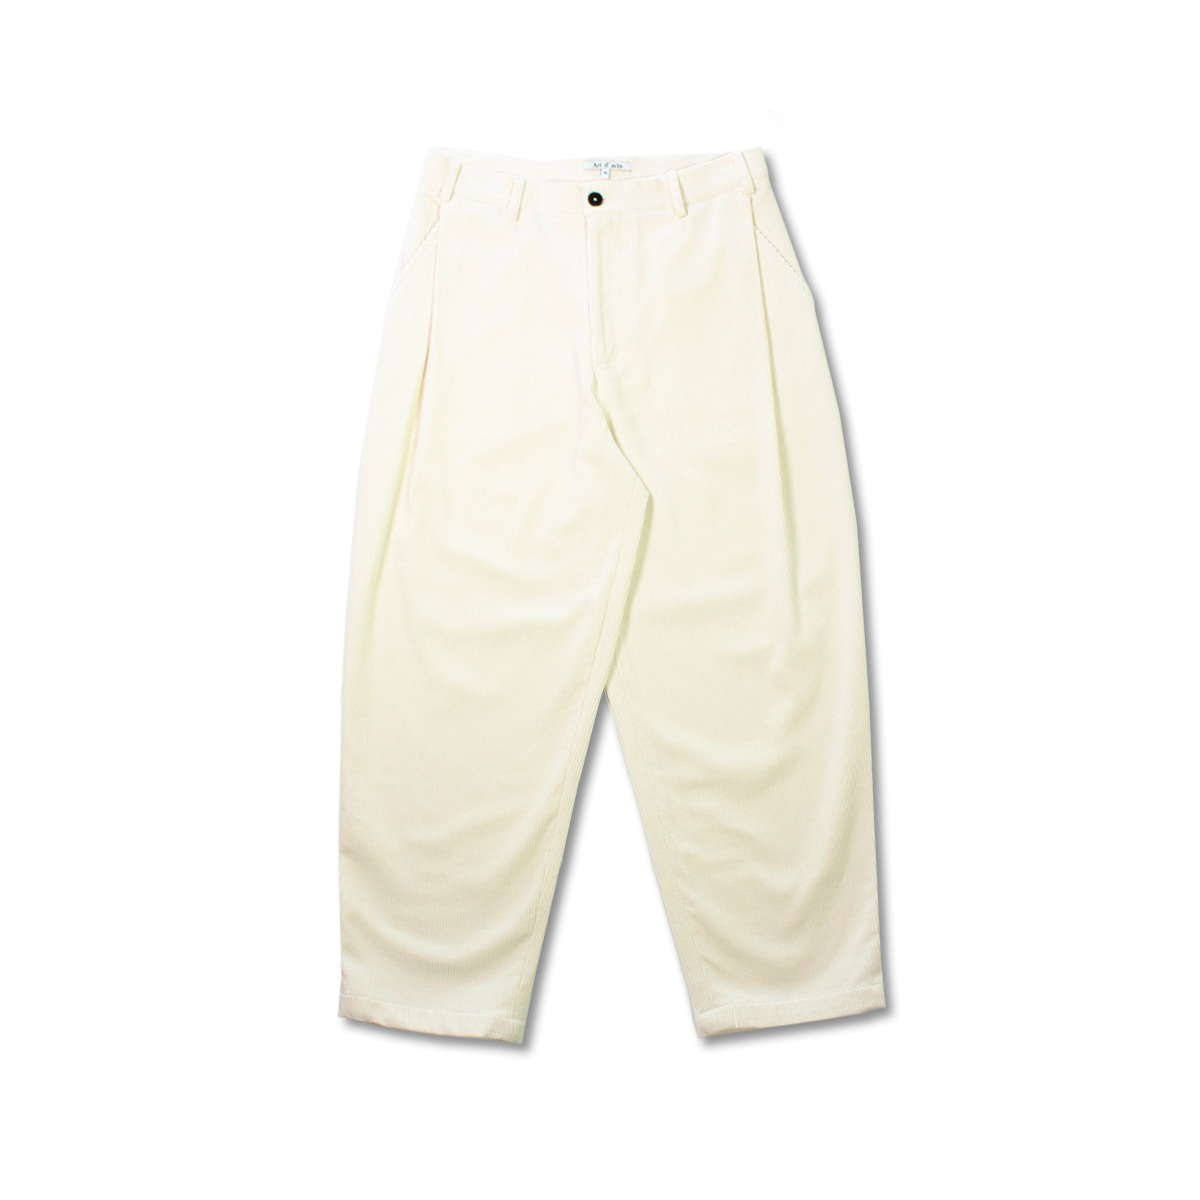 [ART IF ACTS] CORDUROY SIDE TUCKED PANTS 'CREAM'